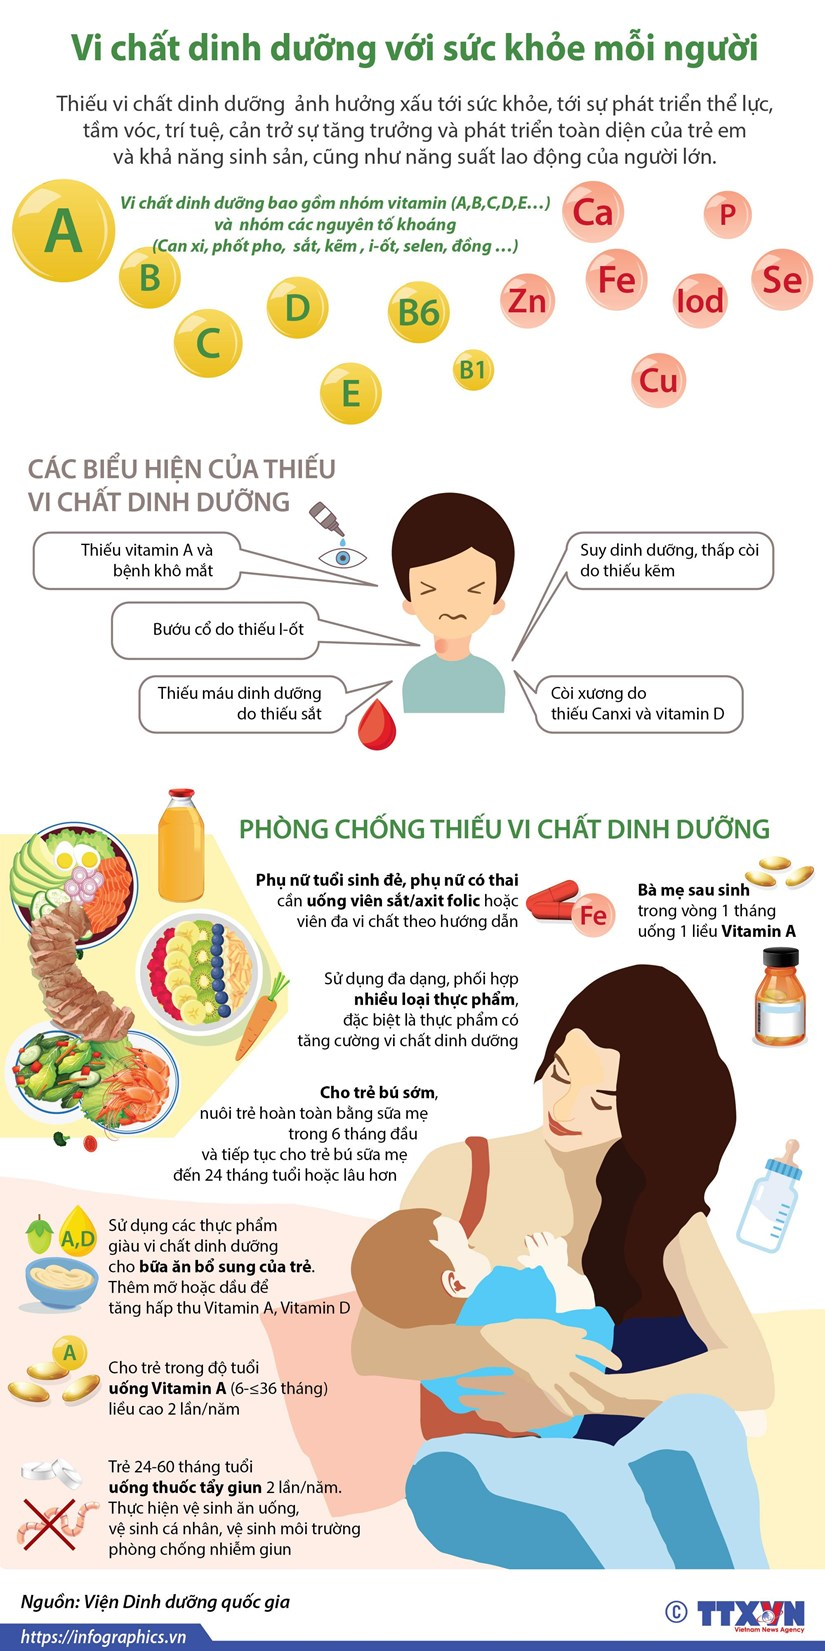 [Infographics] Vi chat dinh duong voi suc khoe moi nguoi hinh anh 1